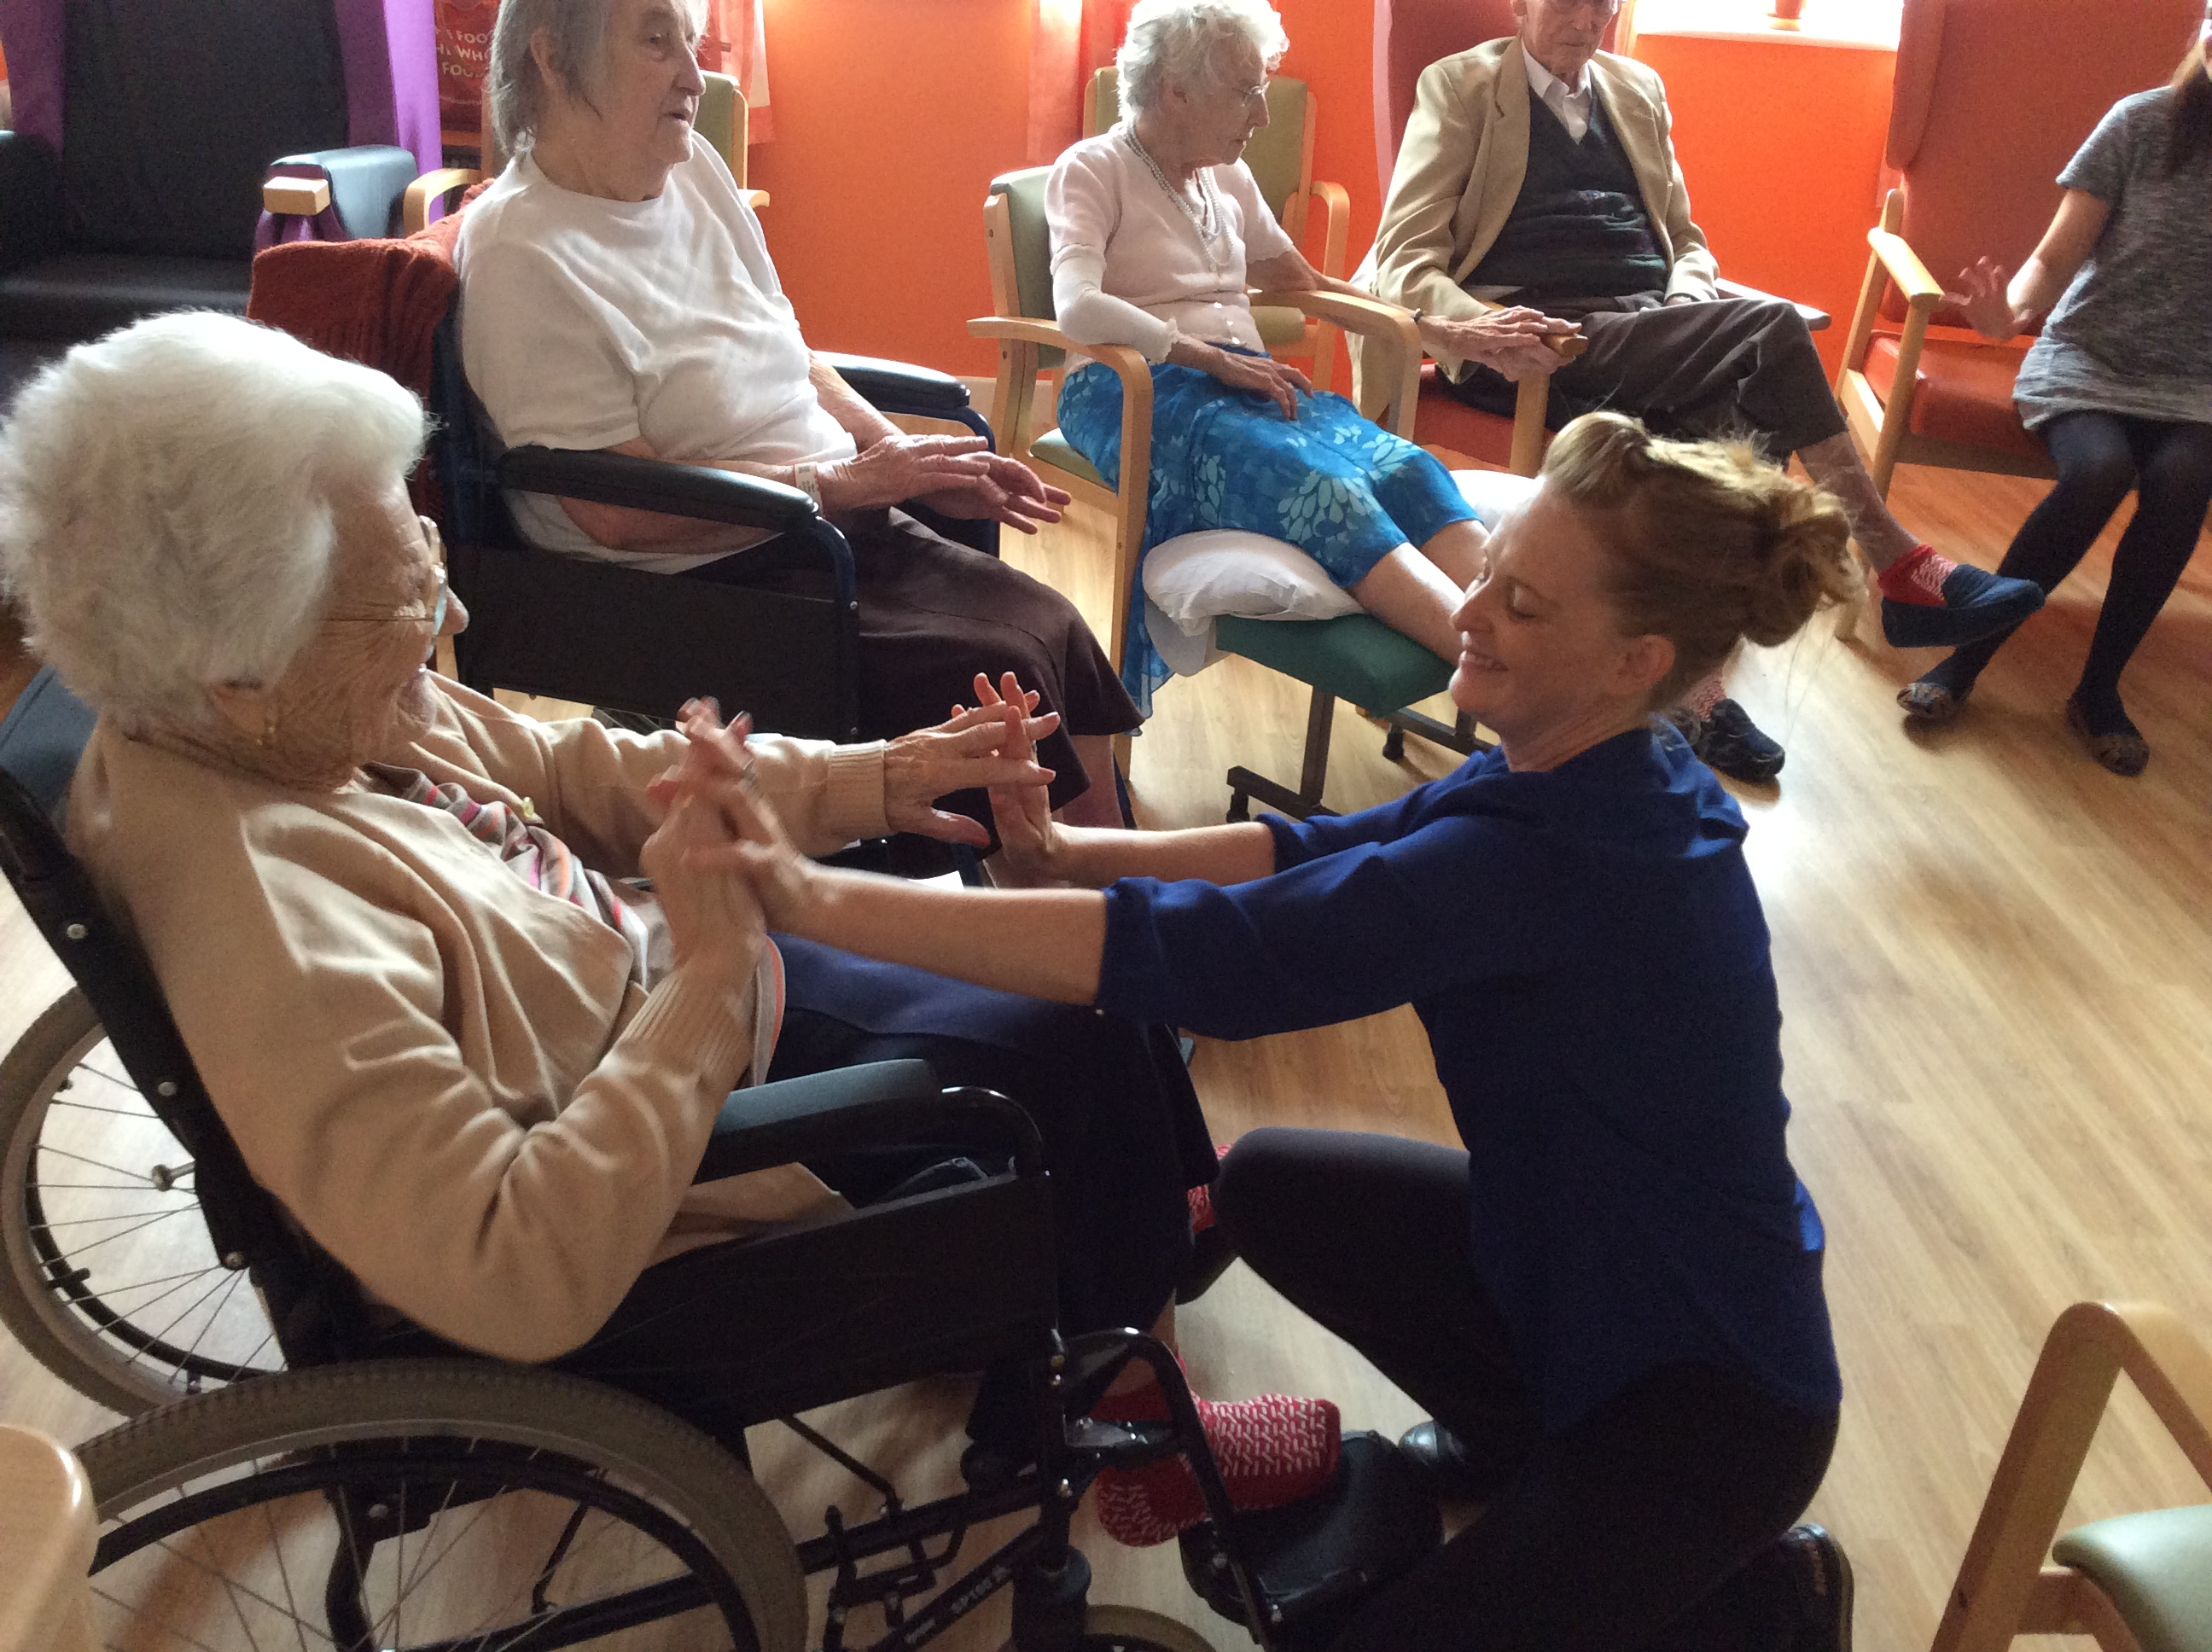 An elderly wheelchair user touches hands with an arts worker. Three other elderly people are visible in the background.